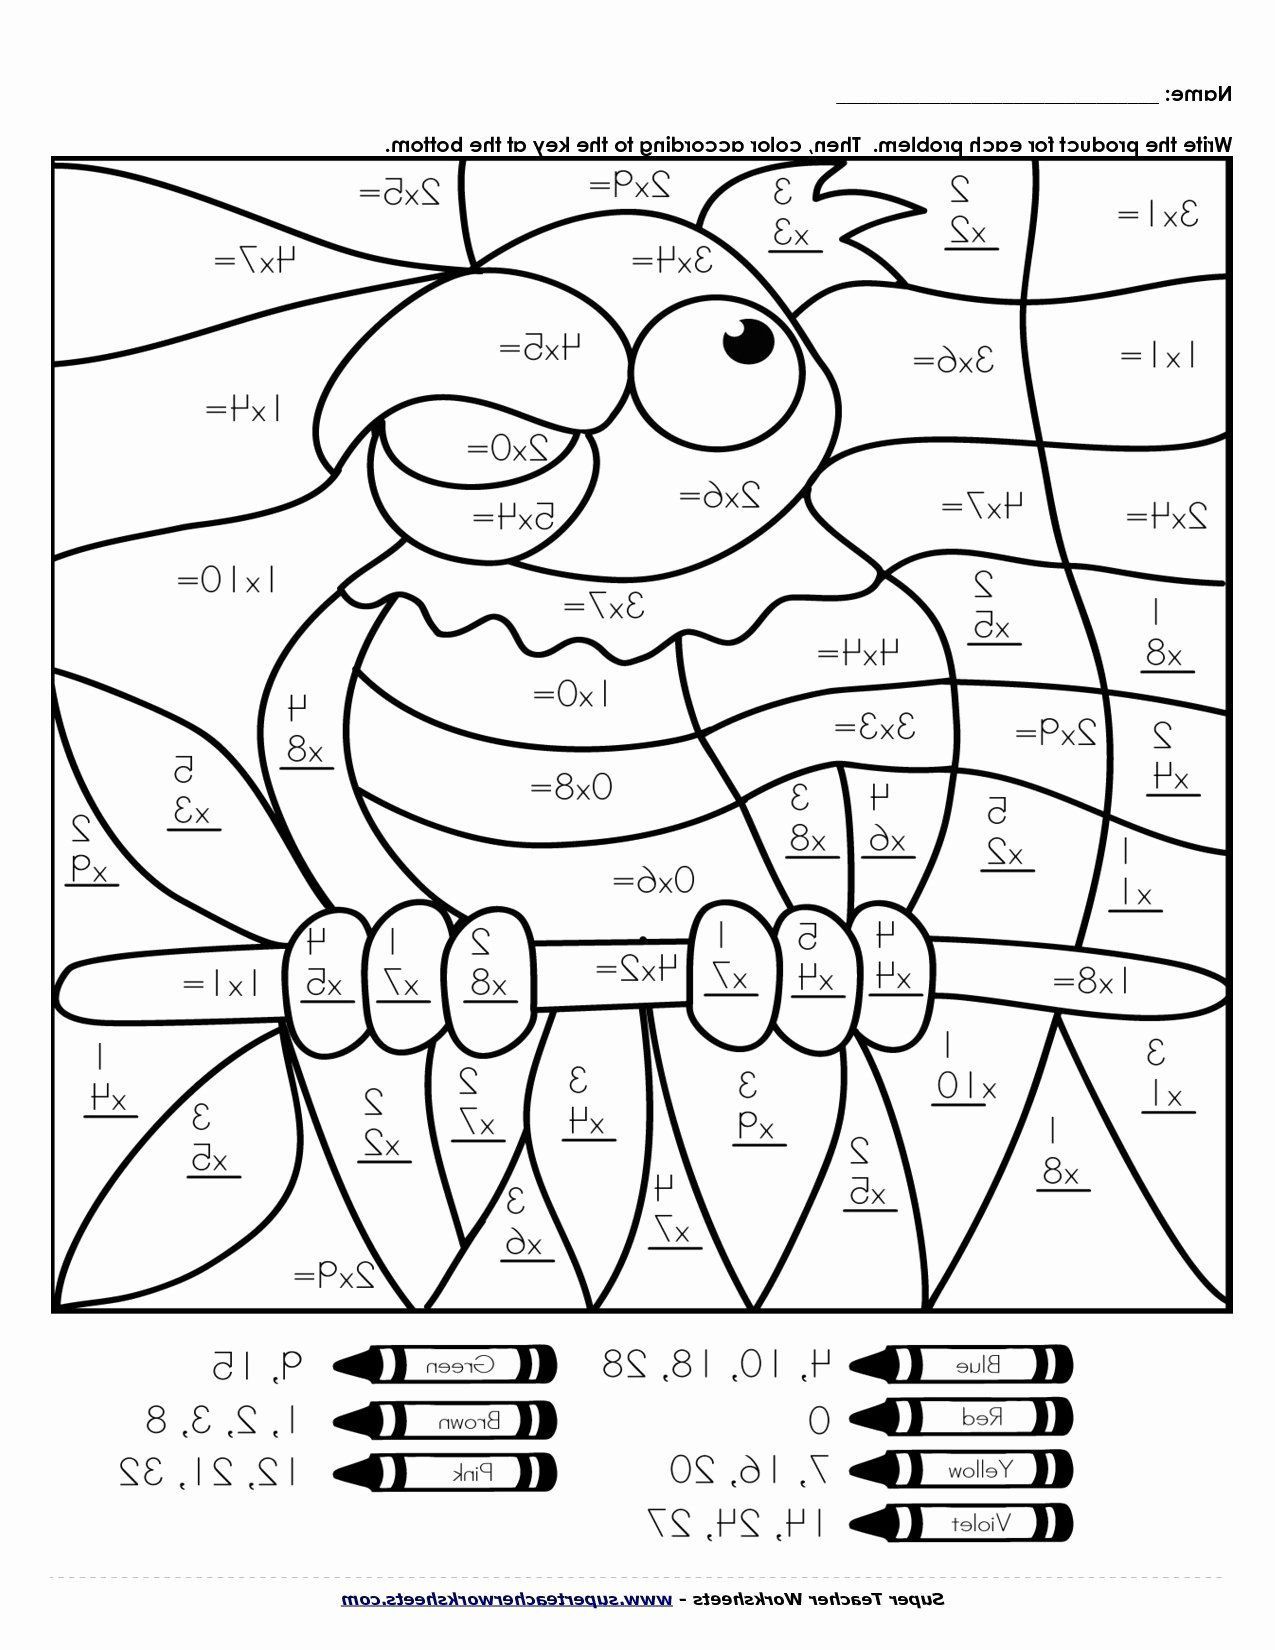 subtracting integers coloring worksheet adding integers coloring worksheet sketch coloring page subtracting integers coloring worksheet